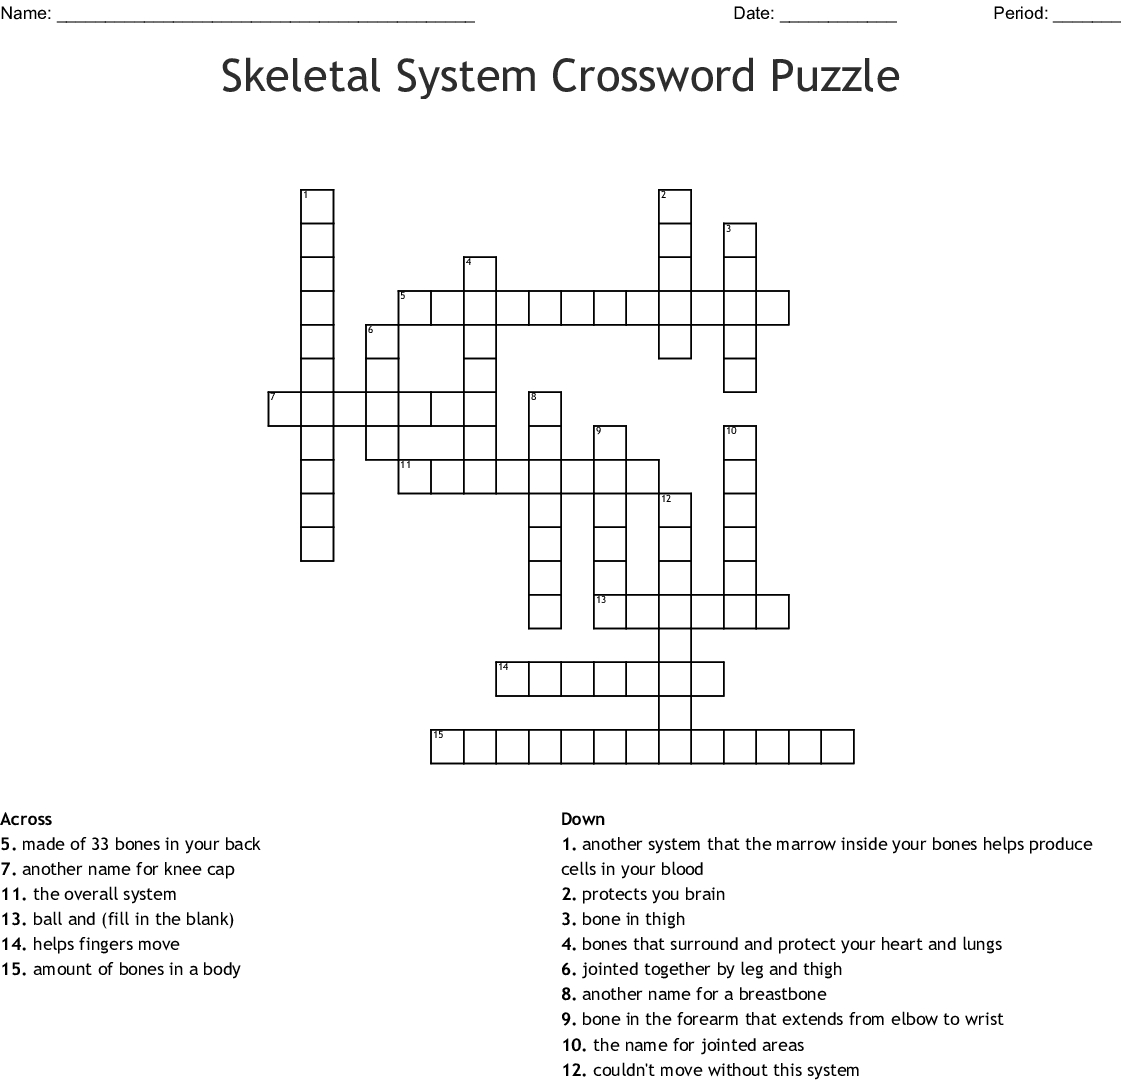 Skeletal System Crossword Puzzle Crossword - Wordmint - Skeletal System Crossword Puzzle Printables